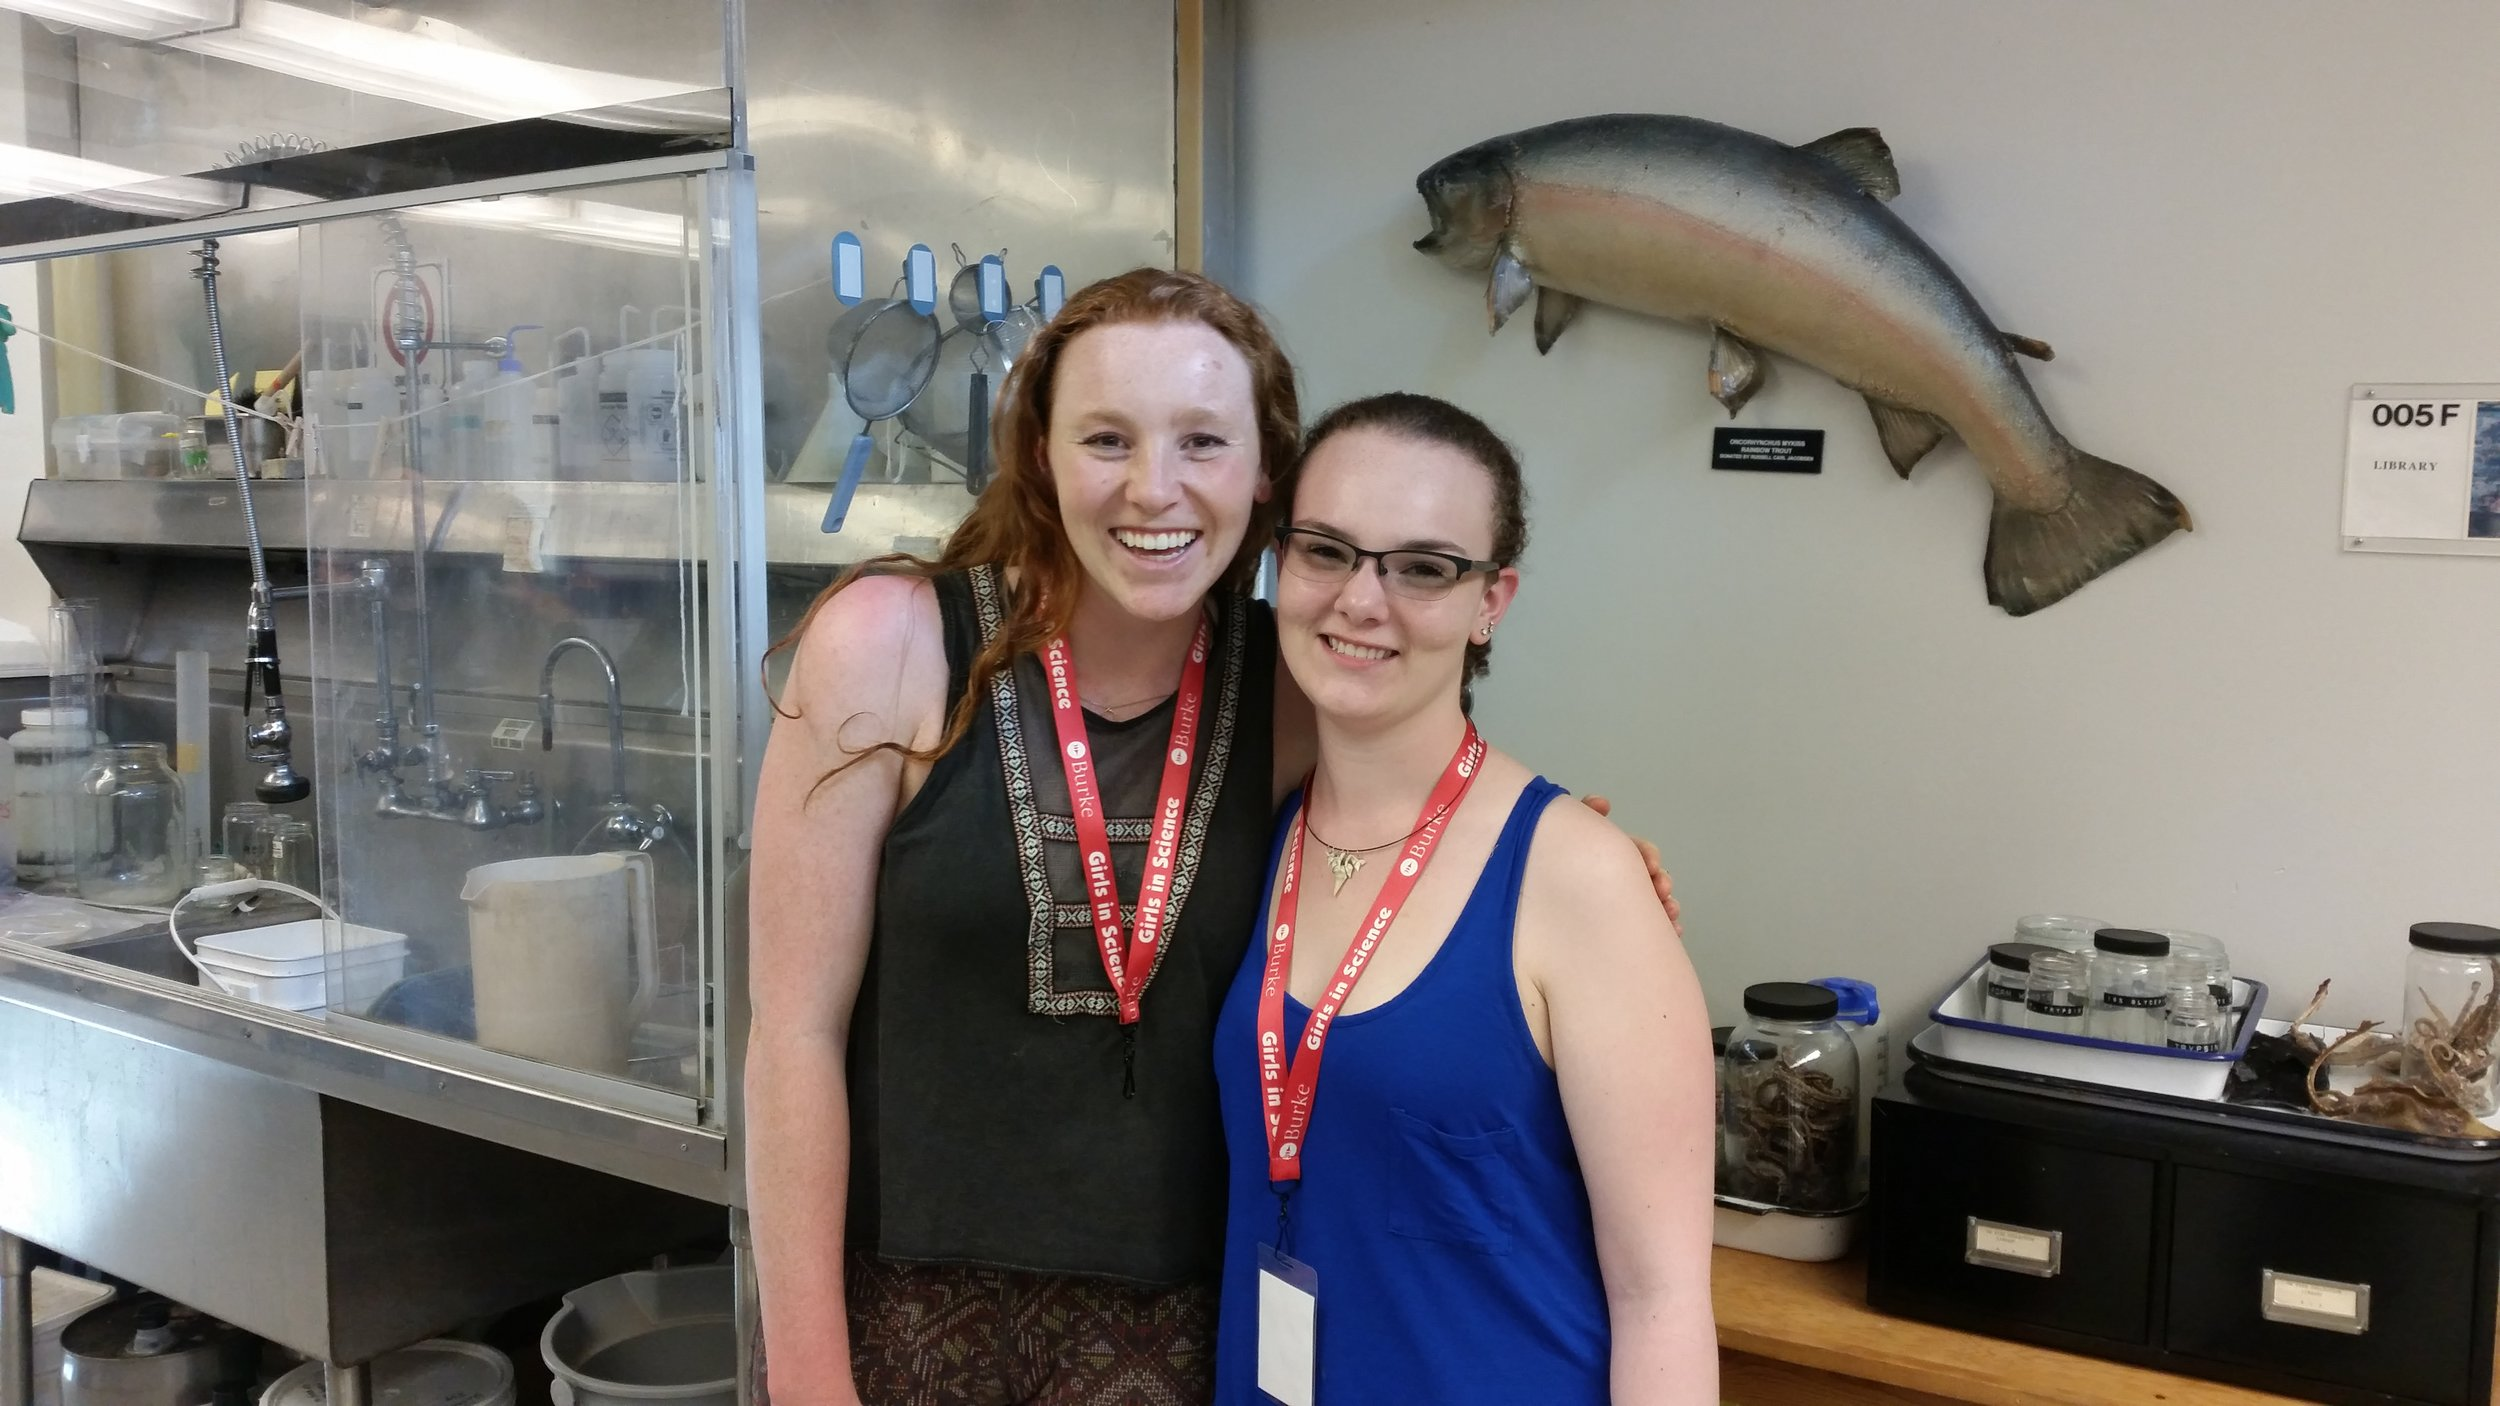 UW Fish Collection staff members and part of the Girls in Science training team,Jalene Weatherholt and Sarah Yerrace.